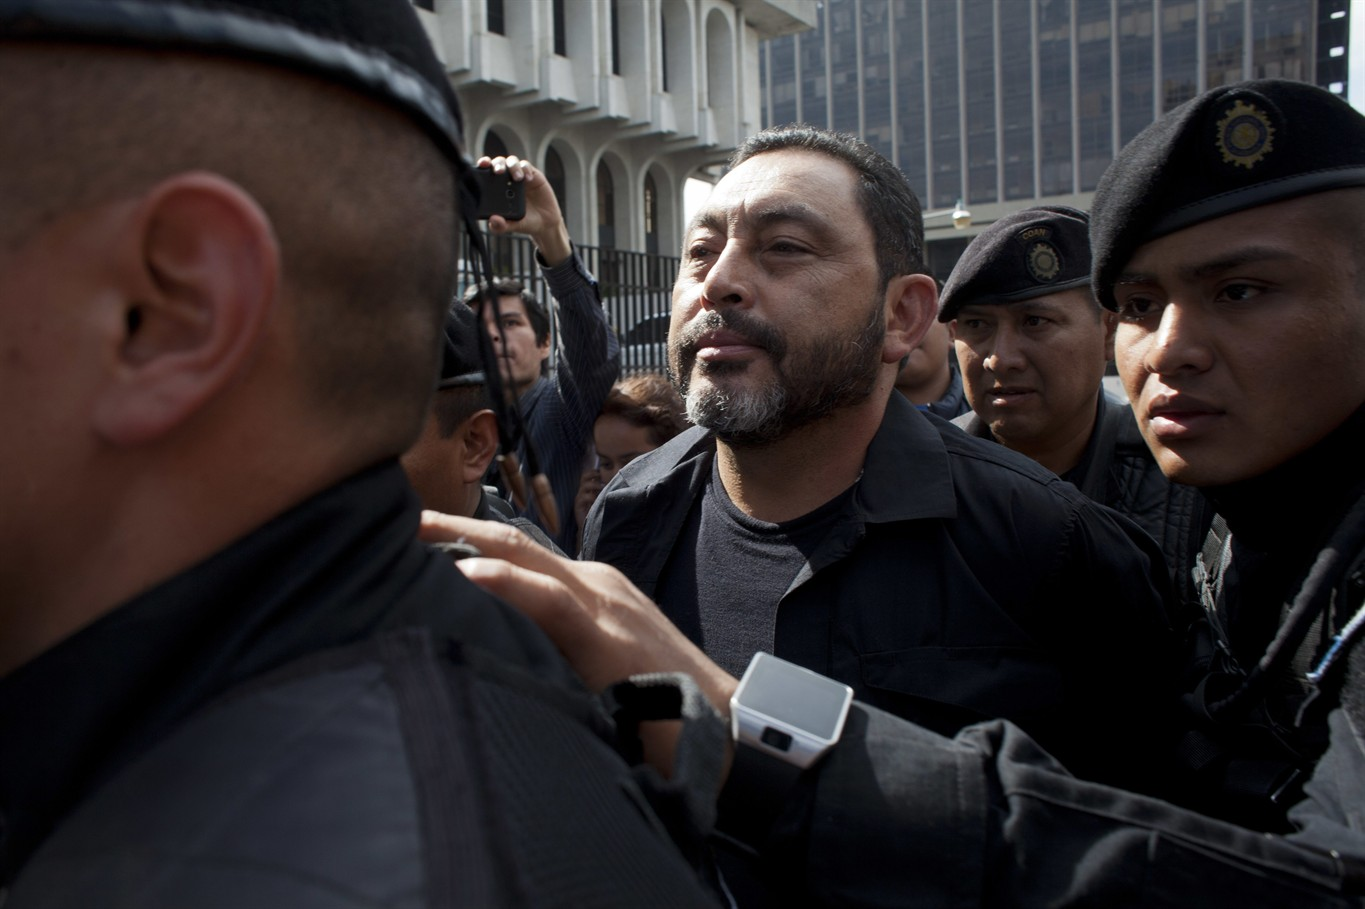 United States seeks to extradite former Guatemalan vice president on drug charges